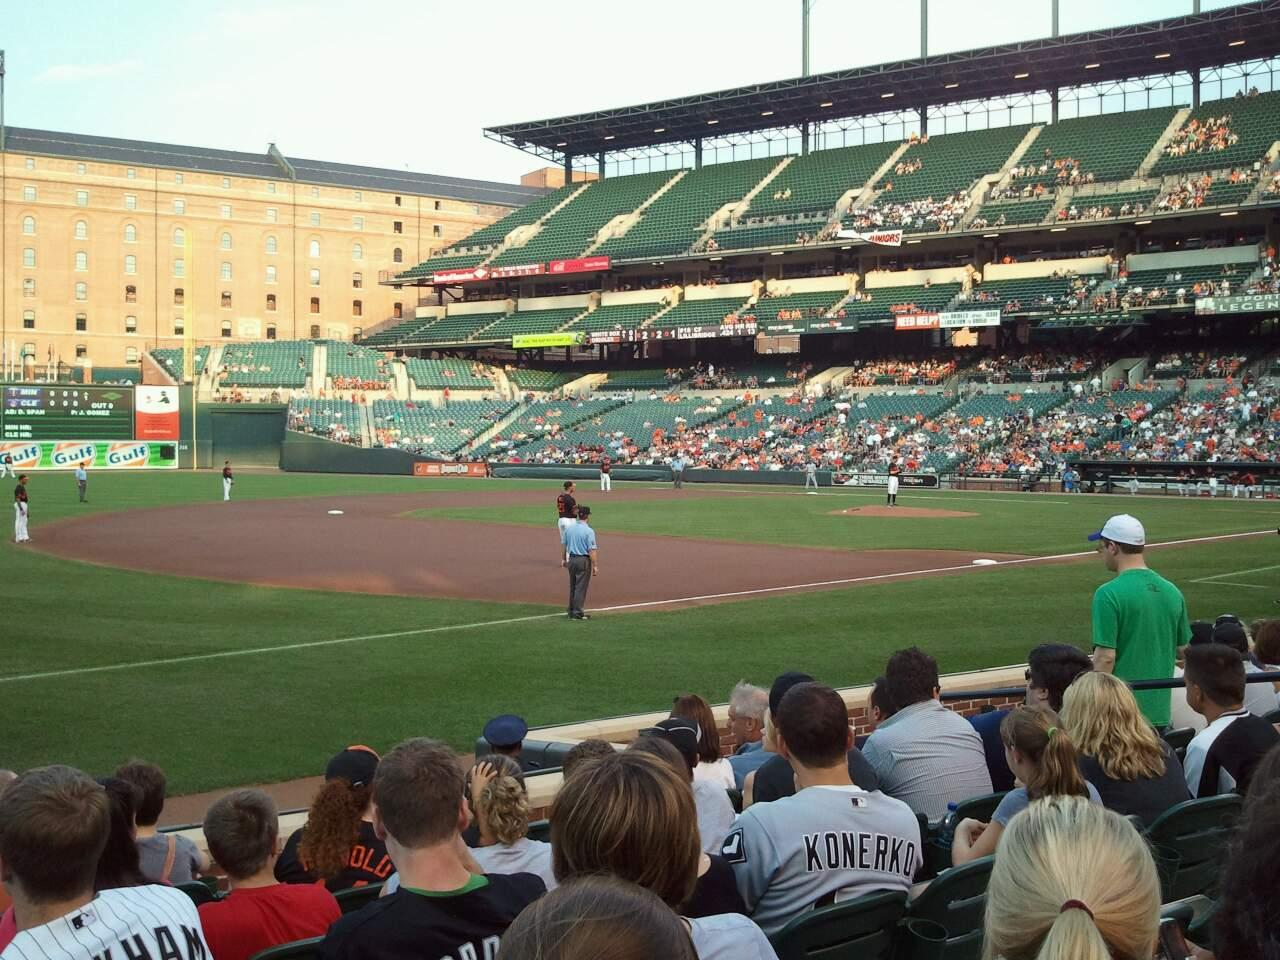 Oriole Park at Camden Yards Section 62 Row 8 Seat 11